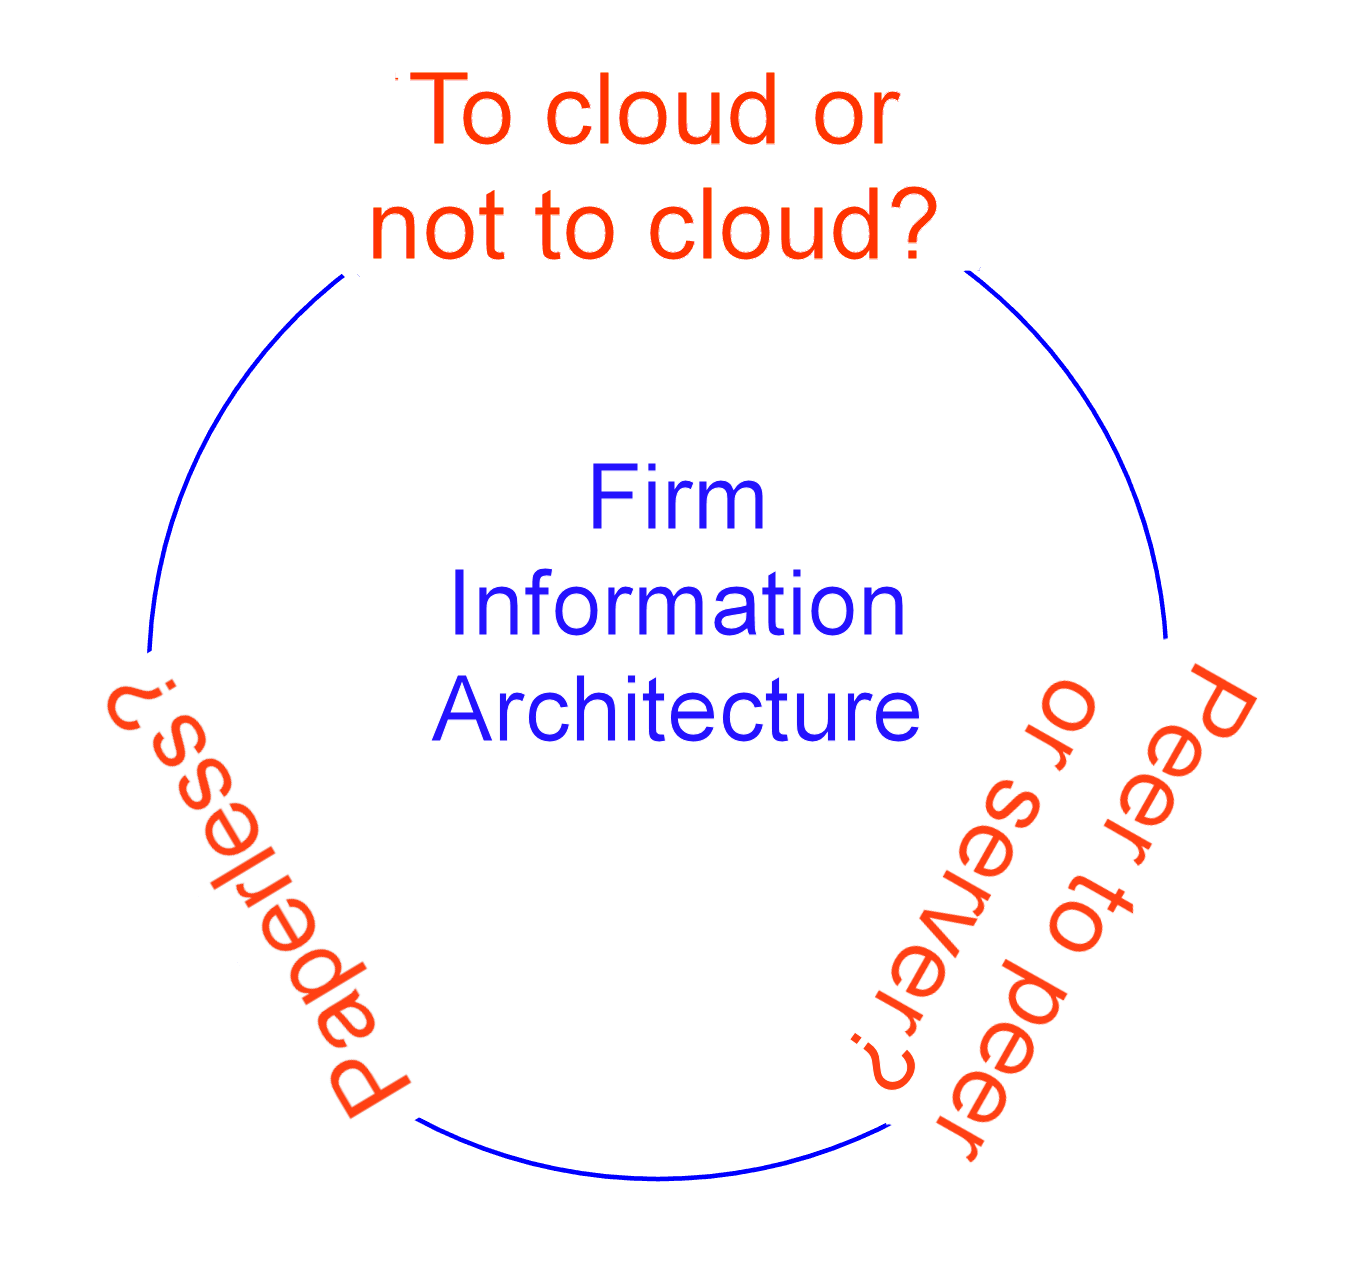 information architecture issues: peer to peer v. server; paperless; cloud